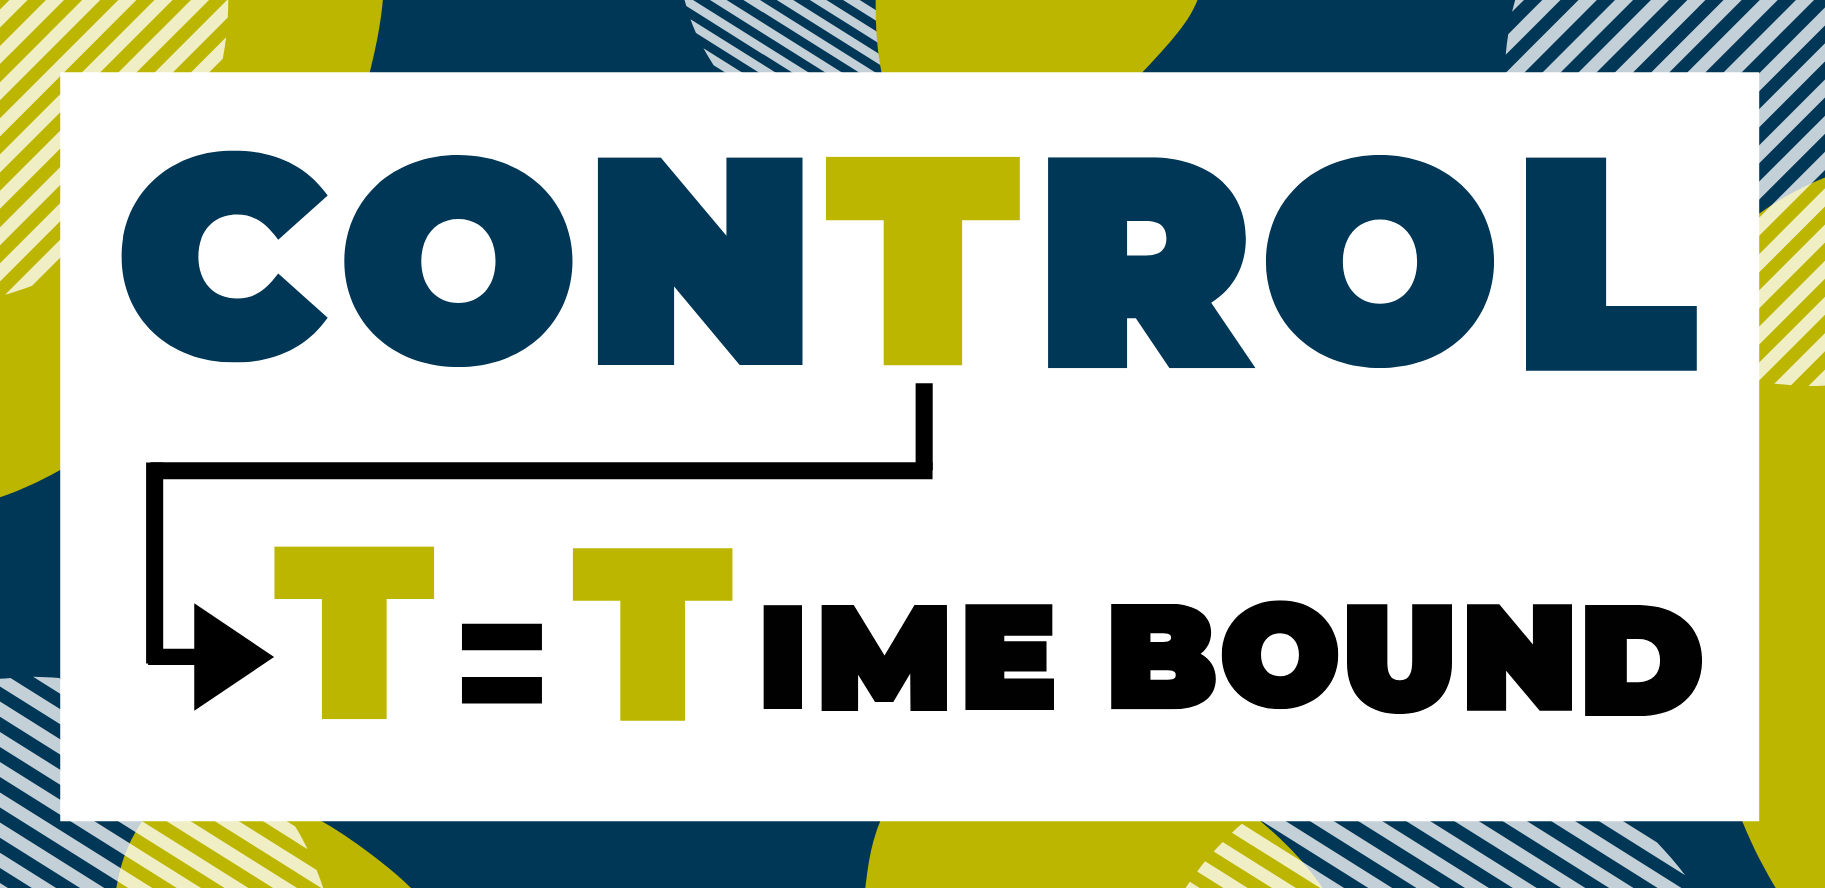 Letter t in control. T = Time bound.